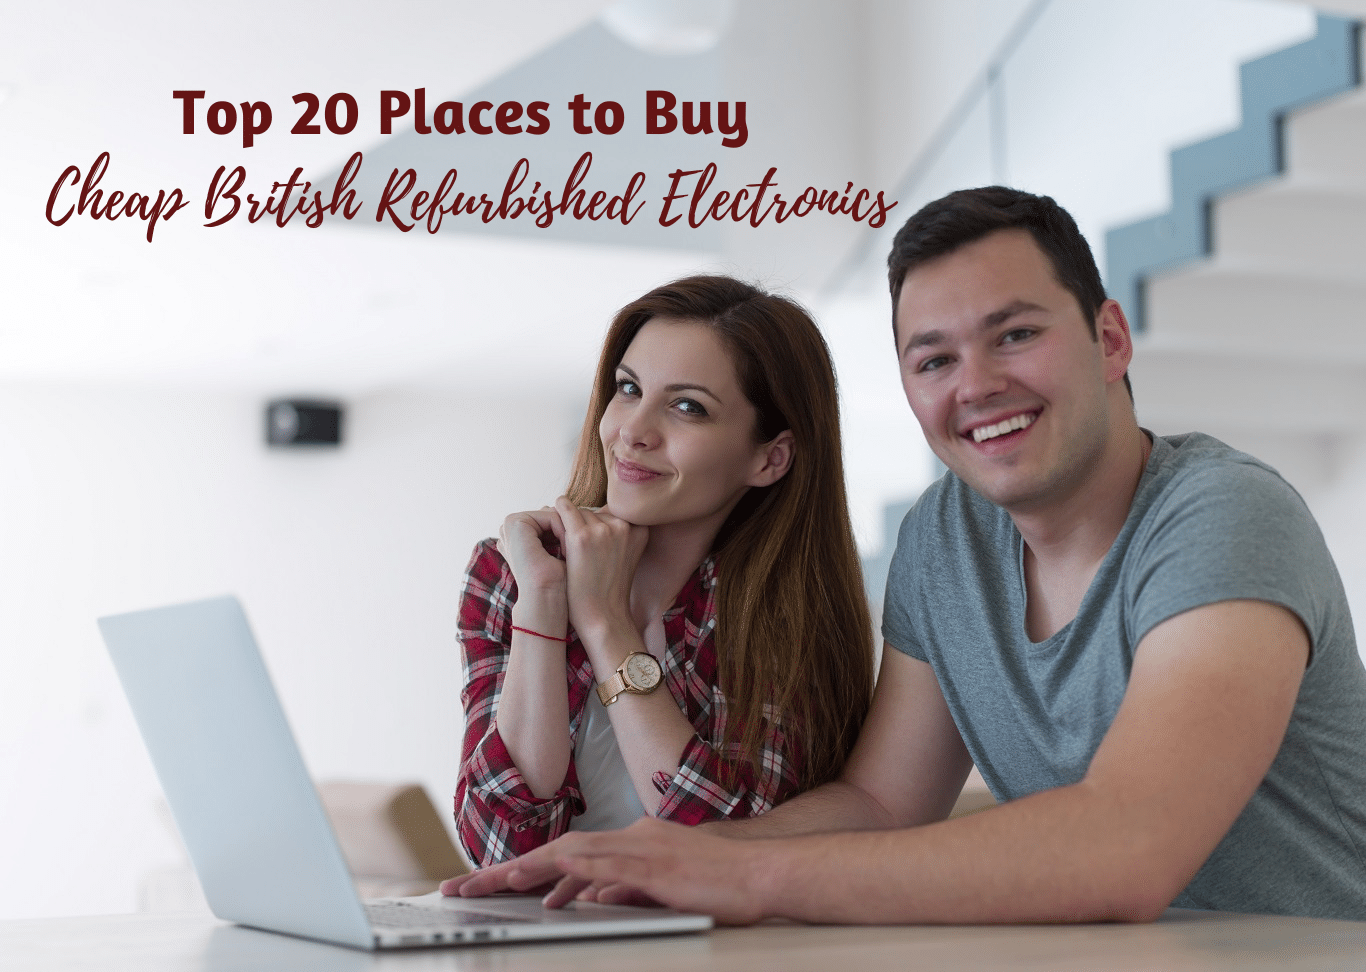 Top 20 Places to Buy Cheap British Refurbished Electronics